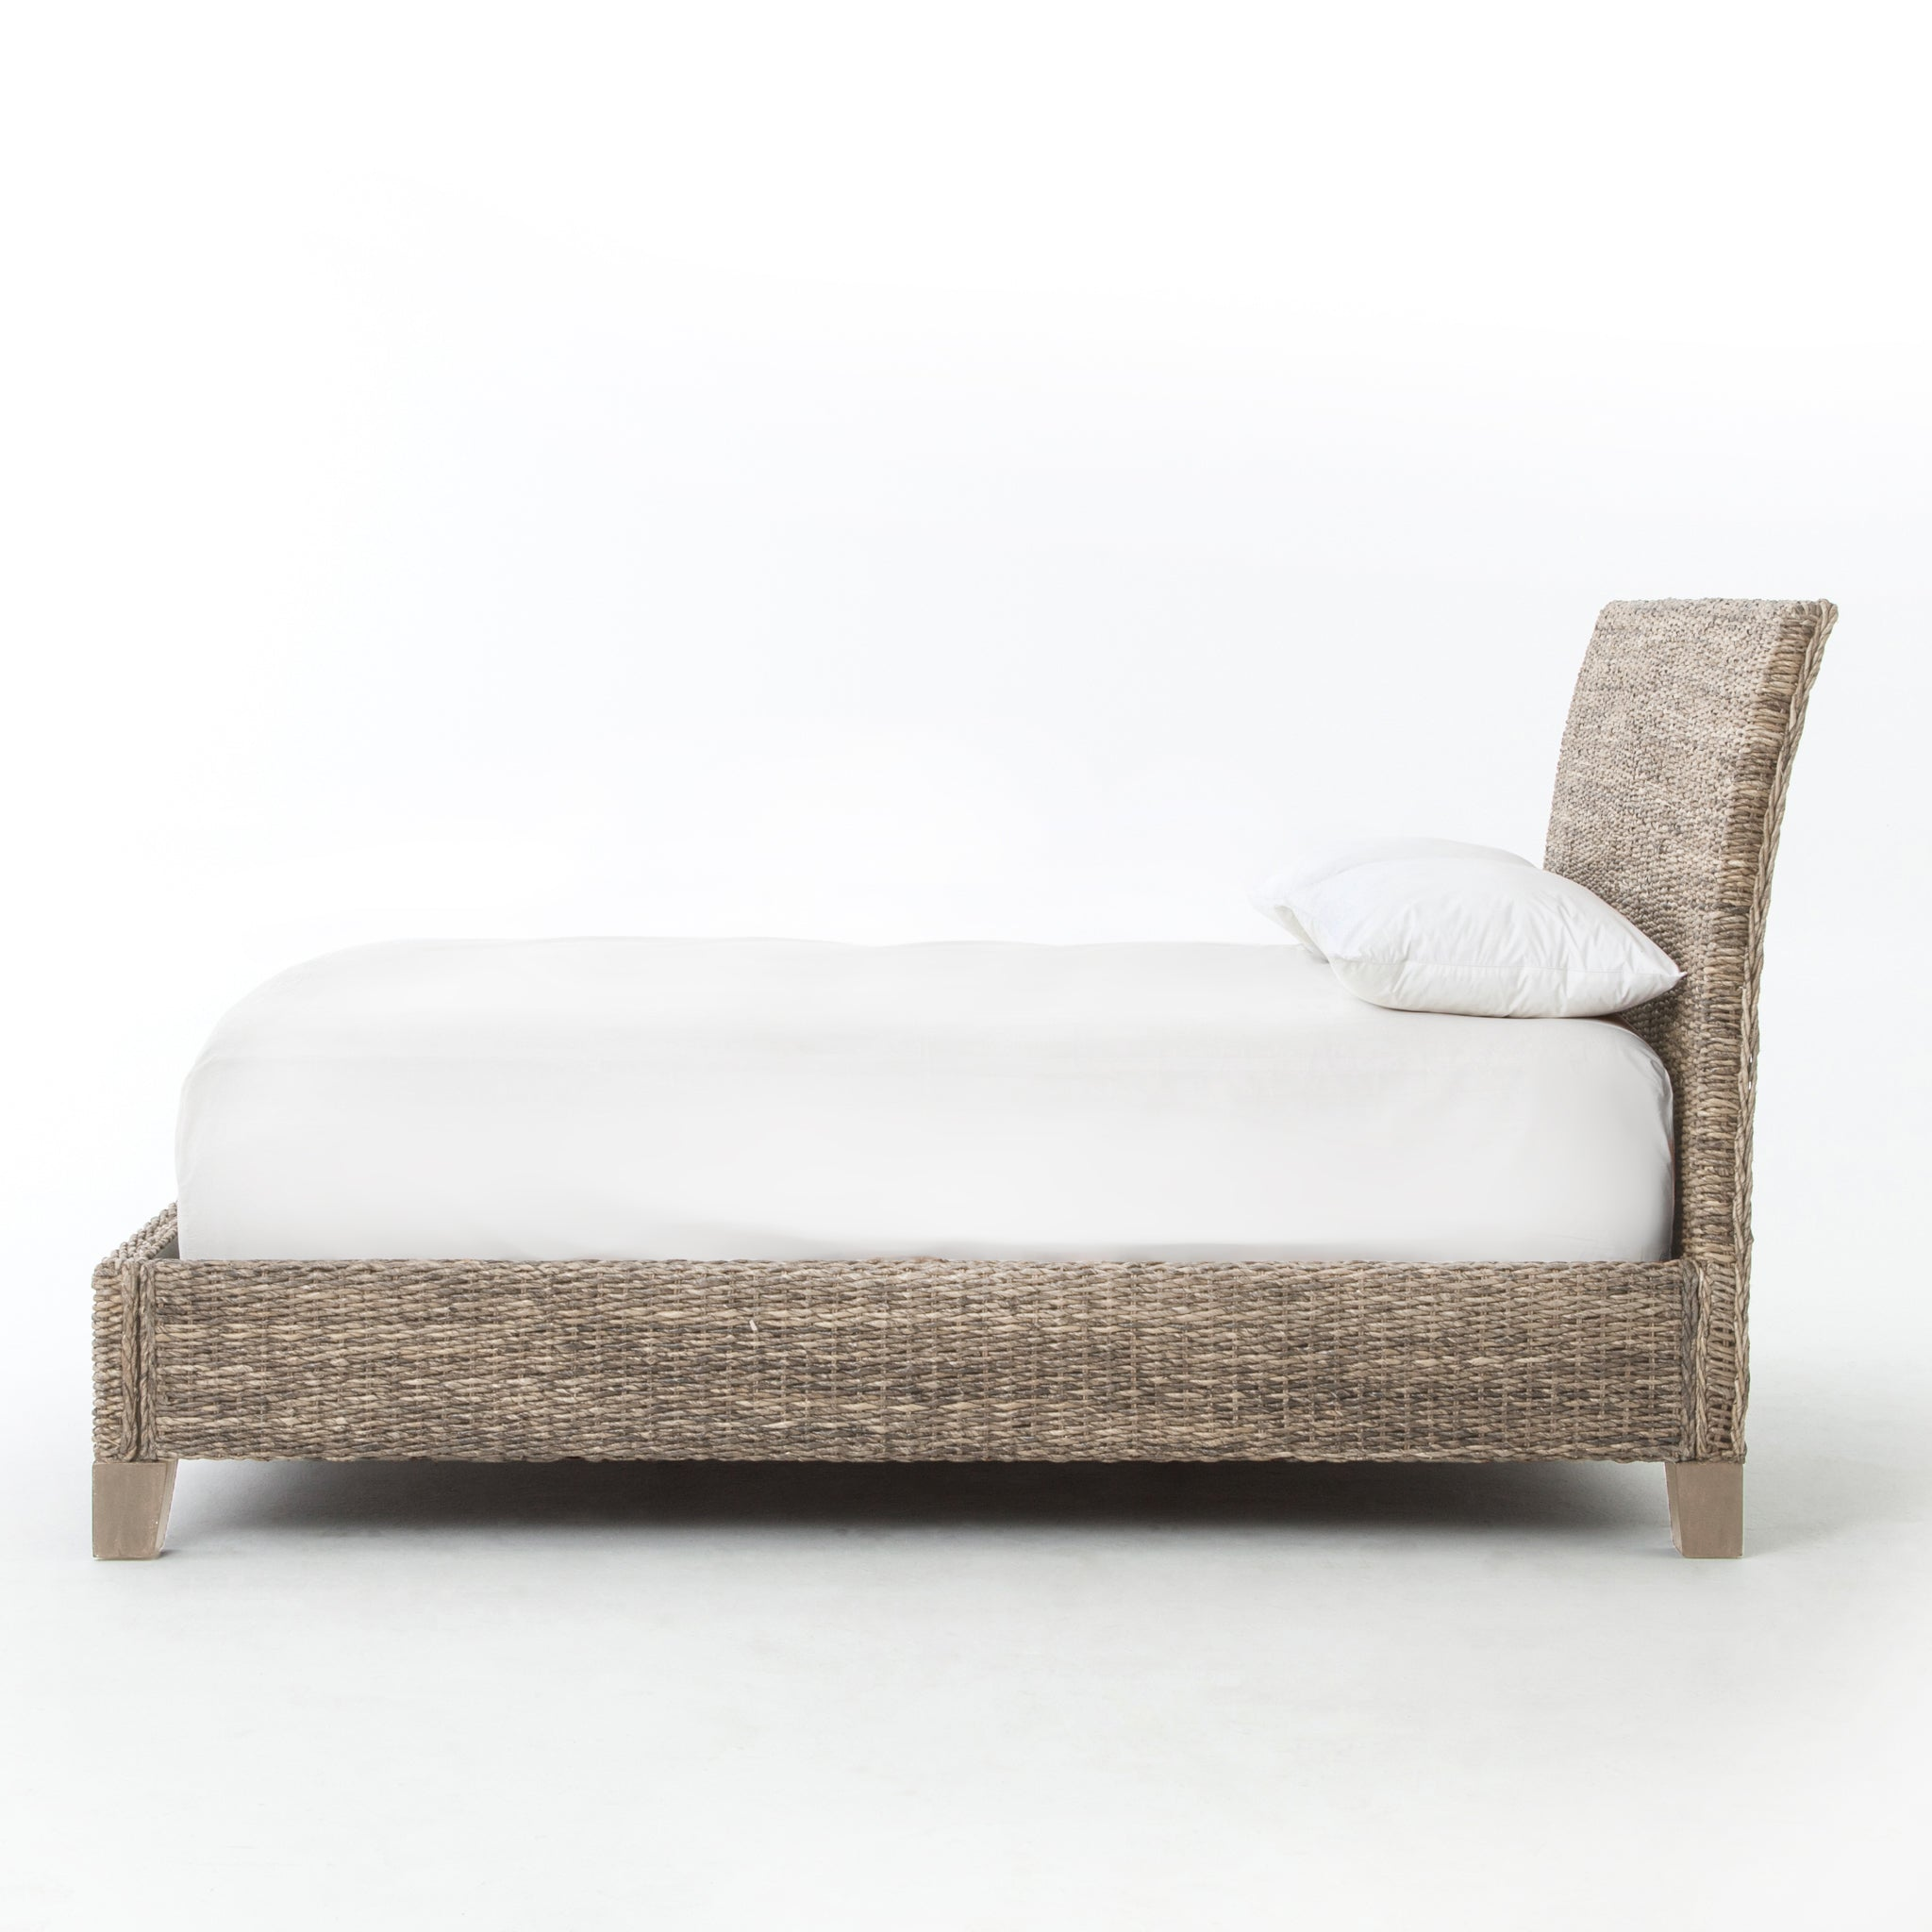 Lanai Banana Leaf Queen Bed-Grey Wash